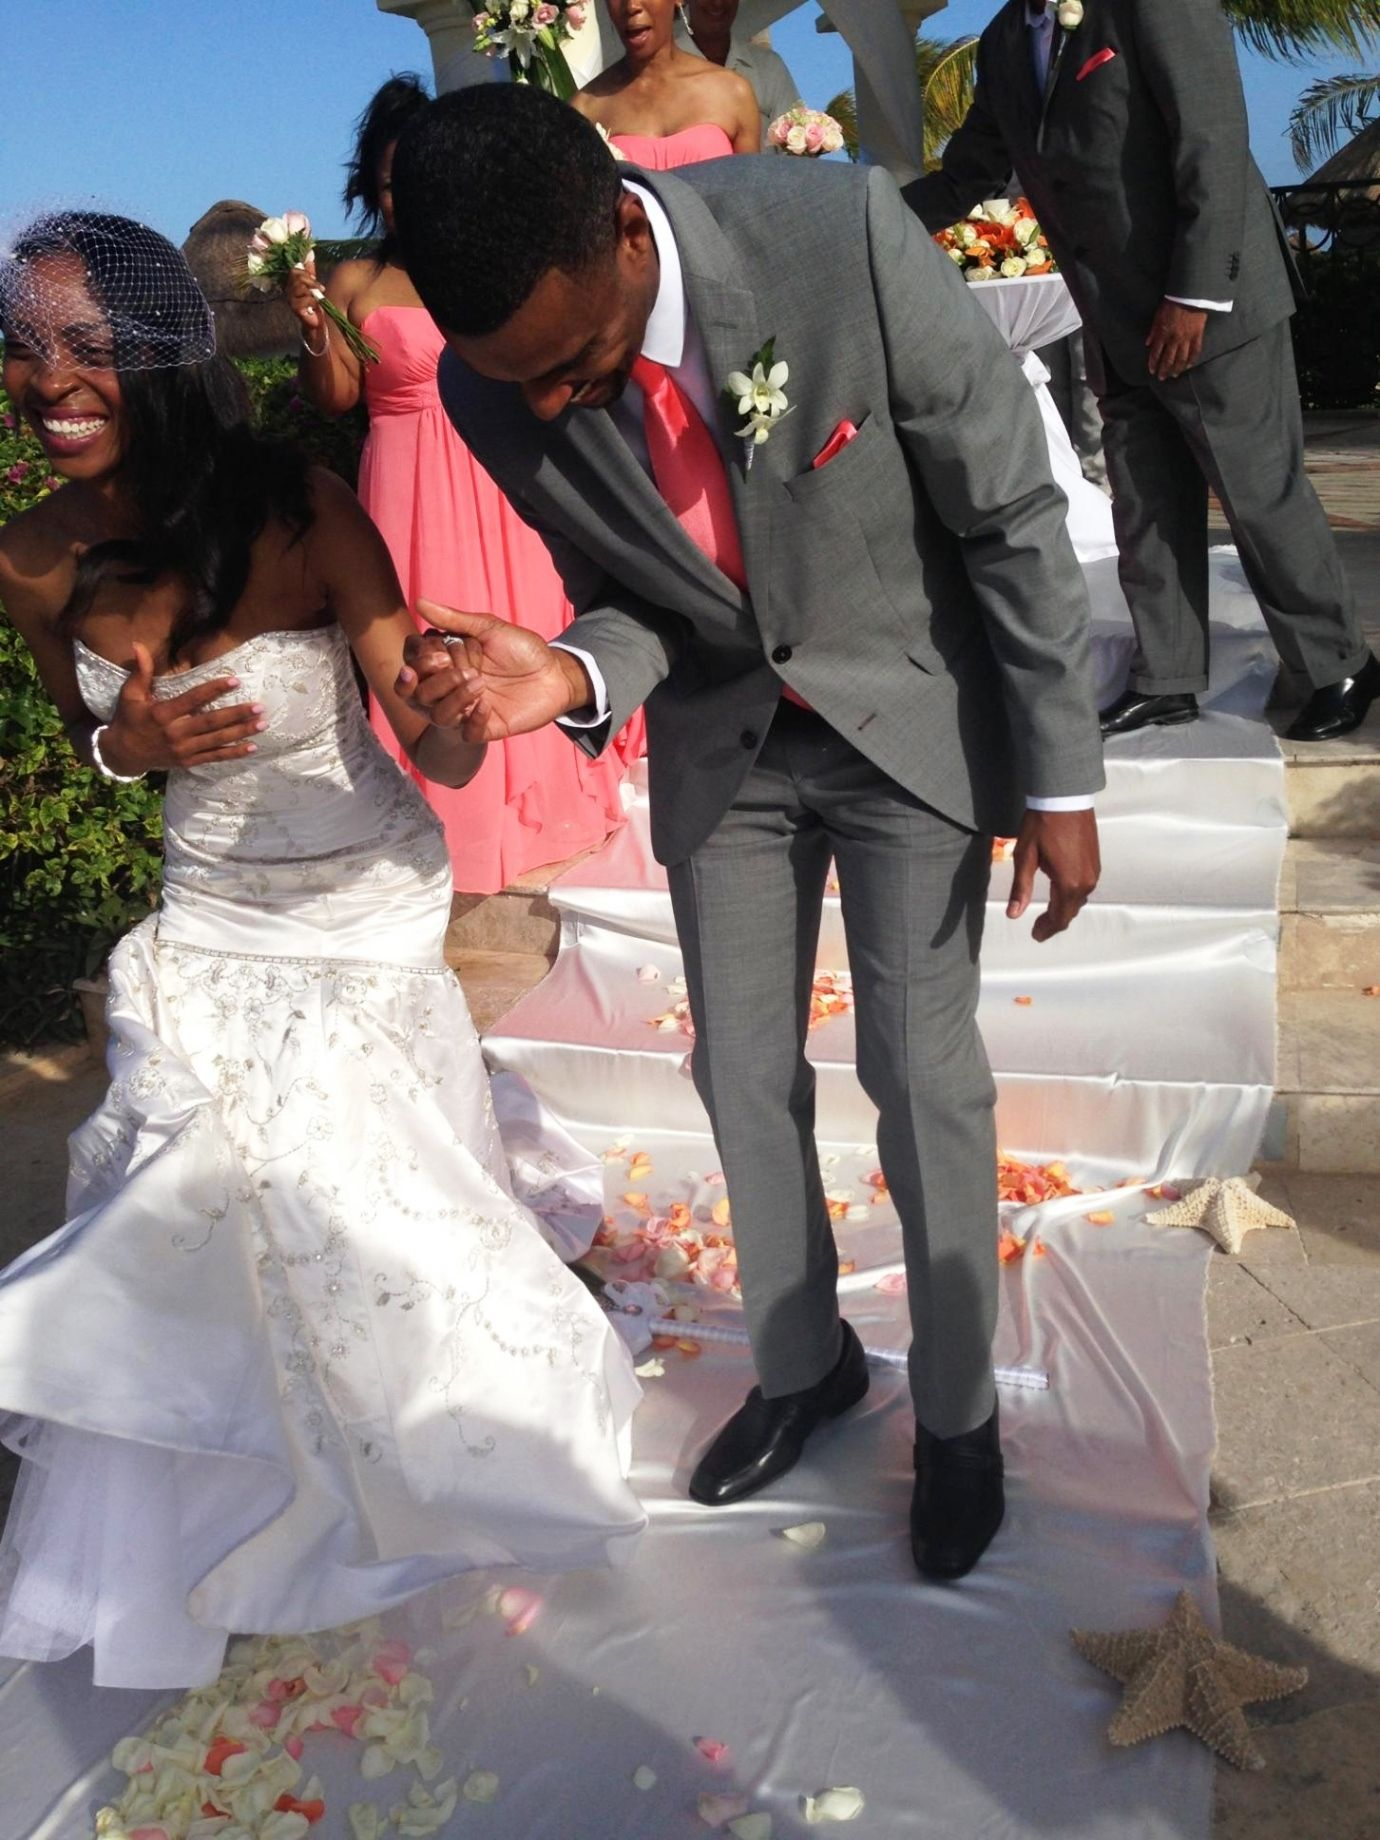 Jumping the broom of love in beautiful mexicojumpingthebroom